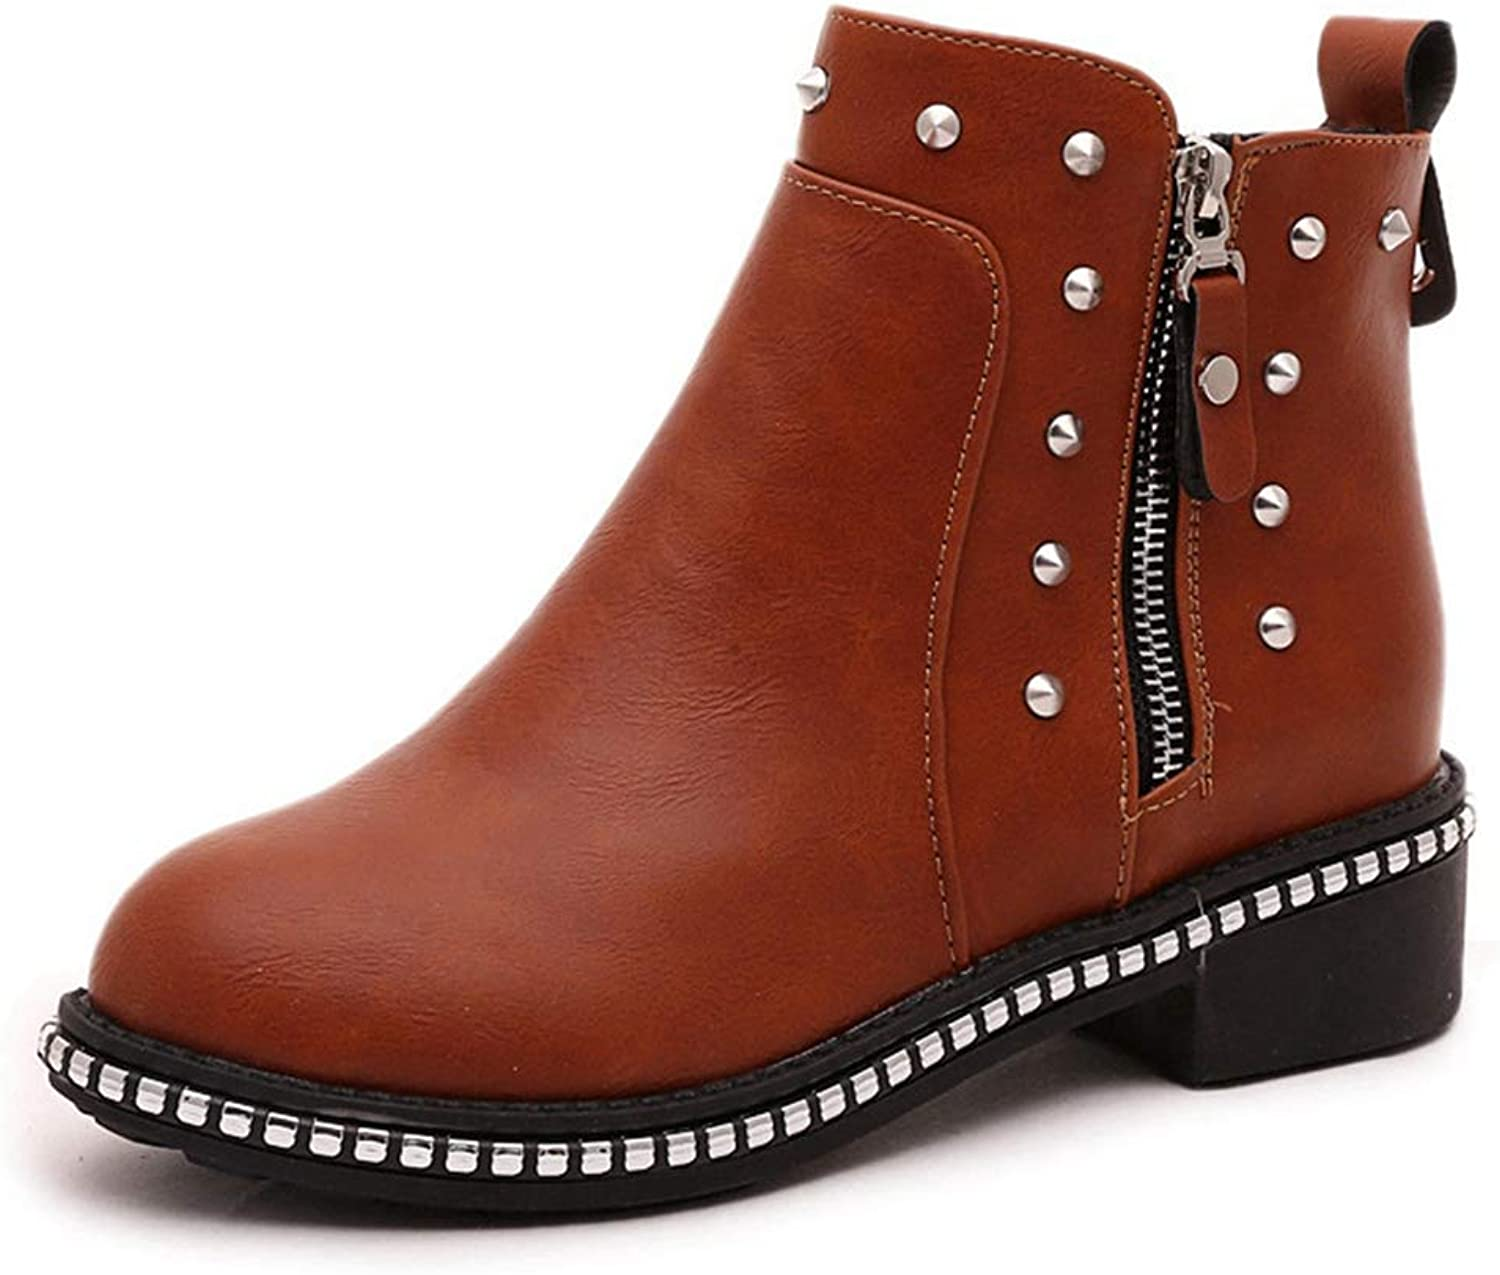 CYBLING Womens Ankle Boots Round Toe Faux Leather Studded Low Heel Side Zipper Booties